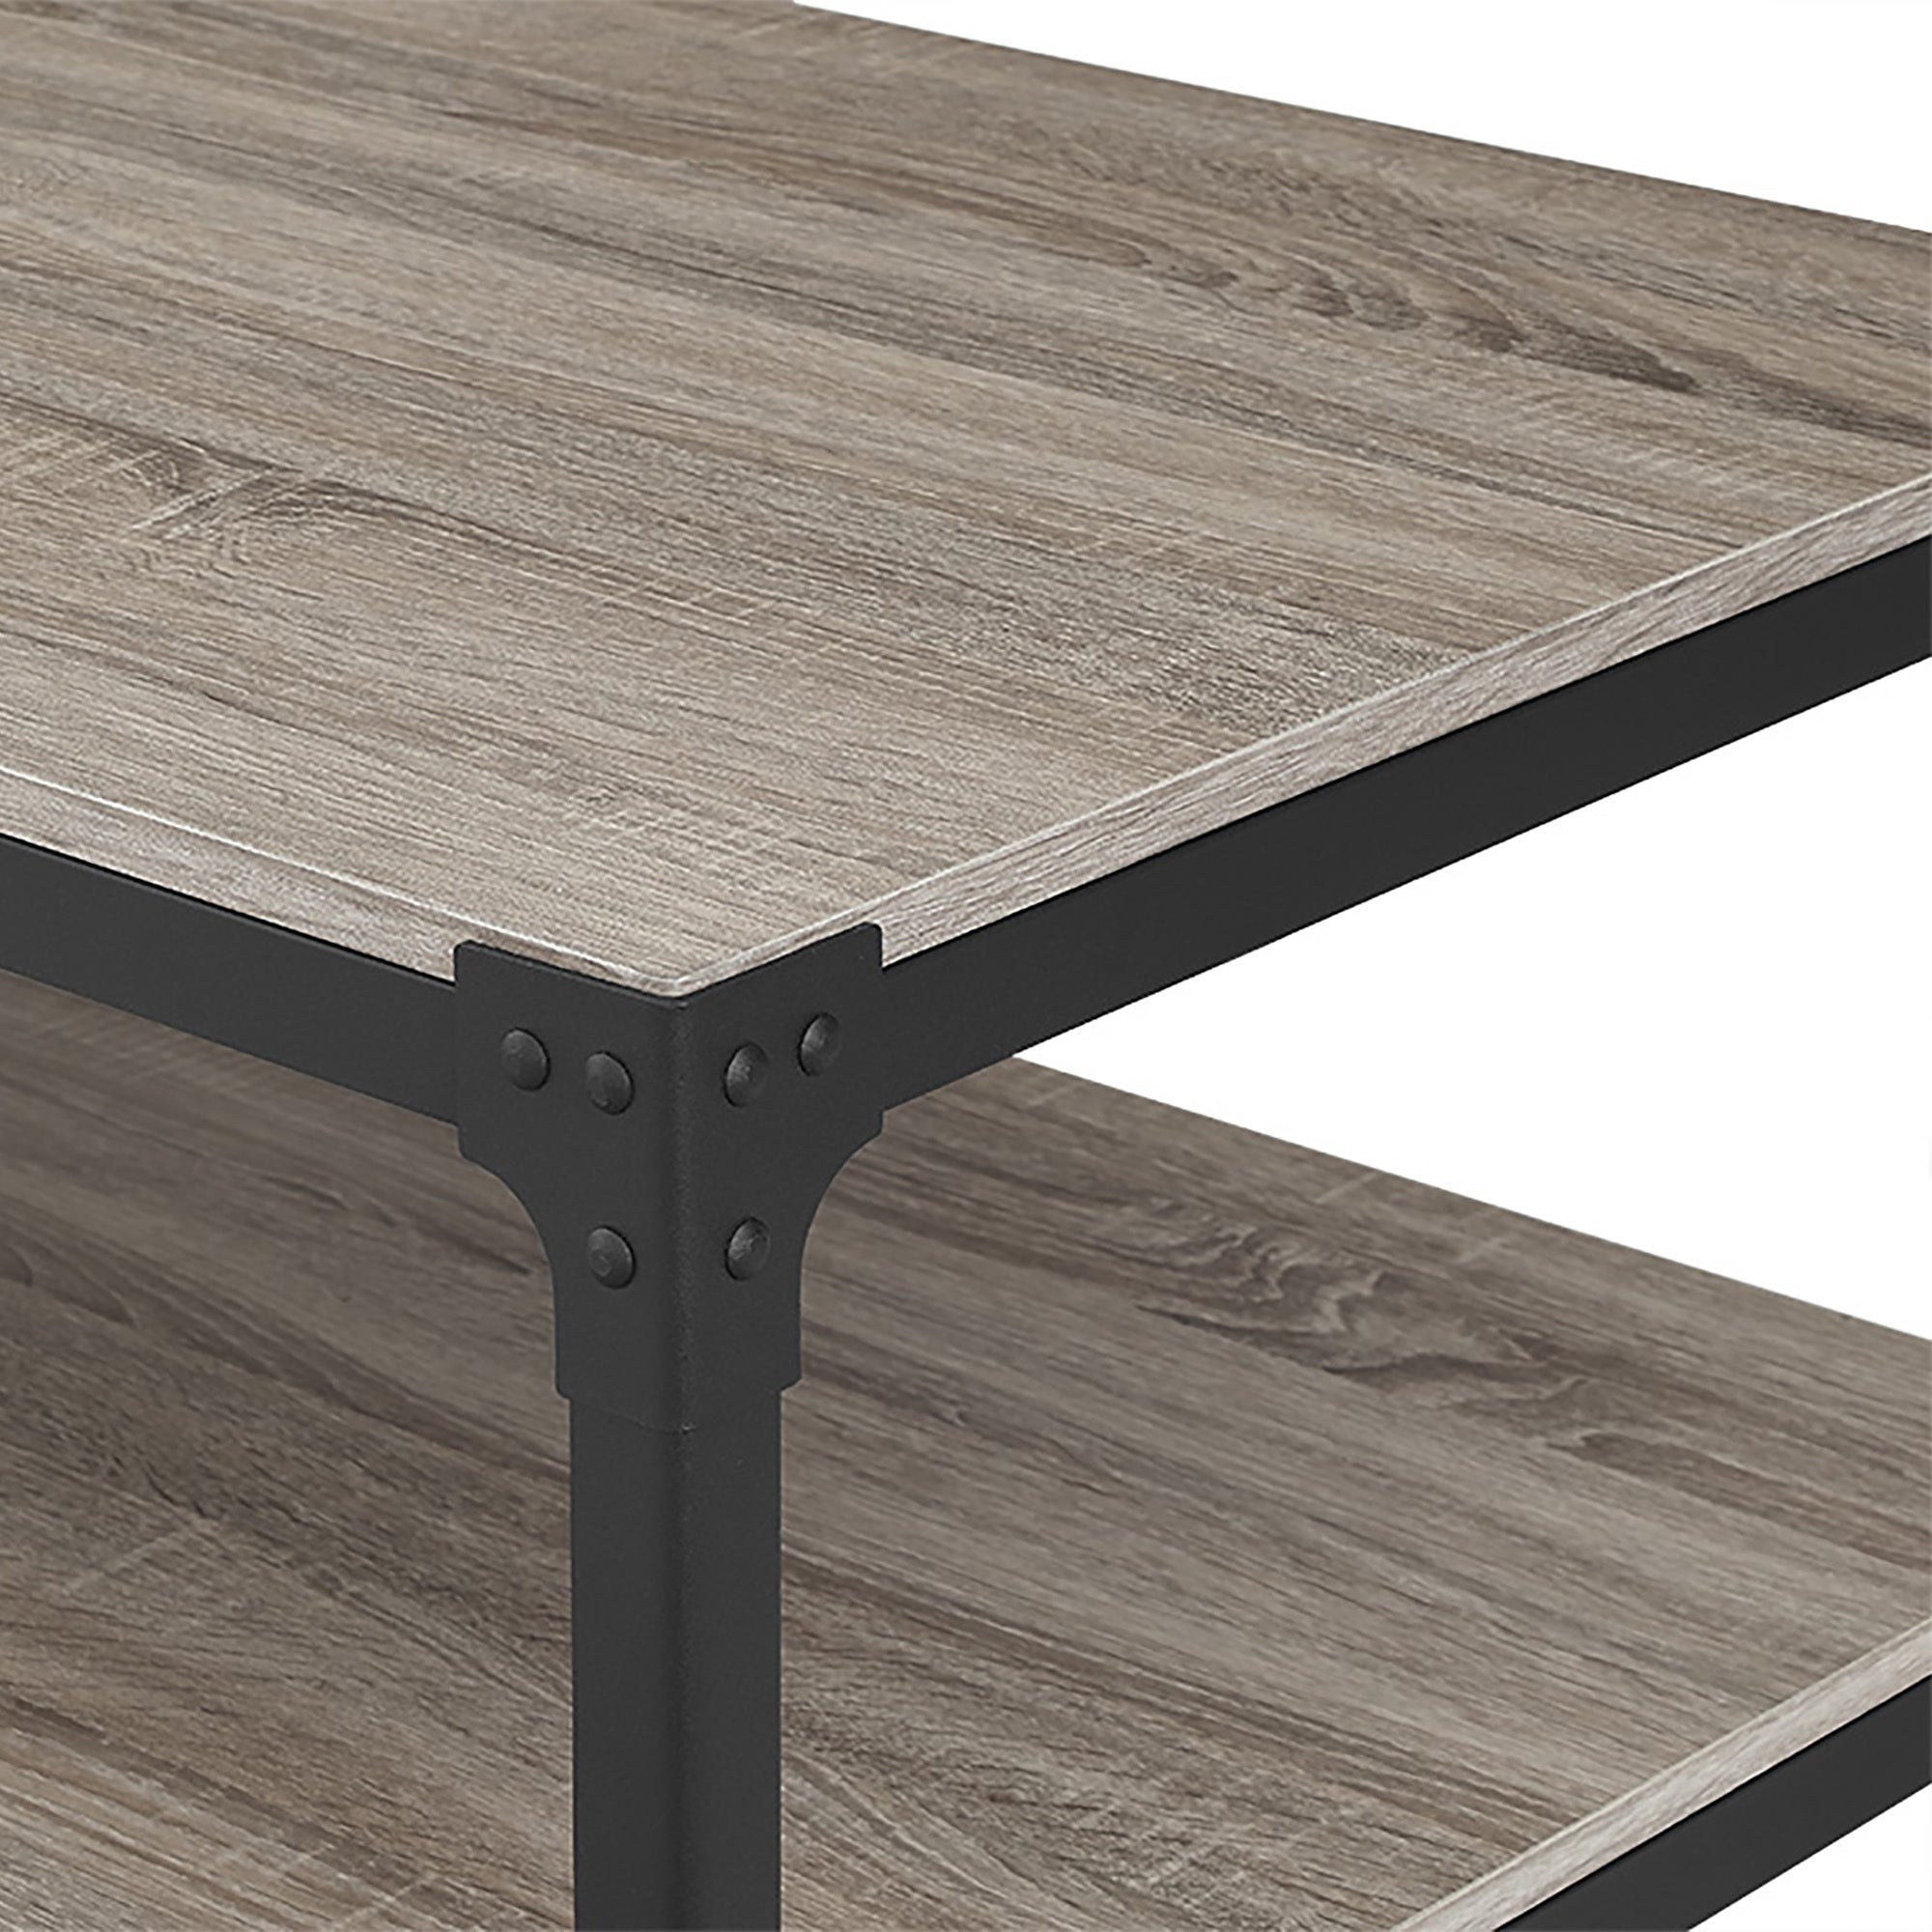 Most Current Carbon Loft Witten Angle Iron And Driftwood Coffee Tables Inside Carbon Loft Witten Angle Iron And Driftwood Coffee Table – 48 X 24 X 18H (View 9 of 20)